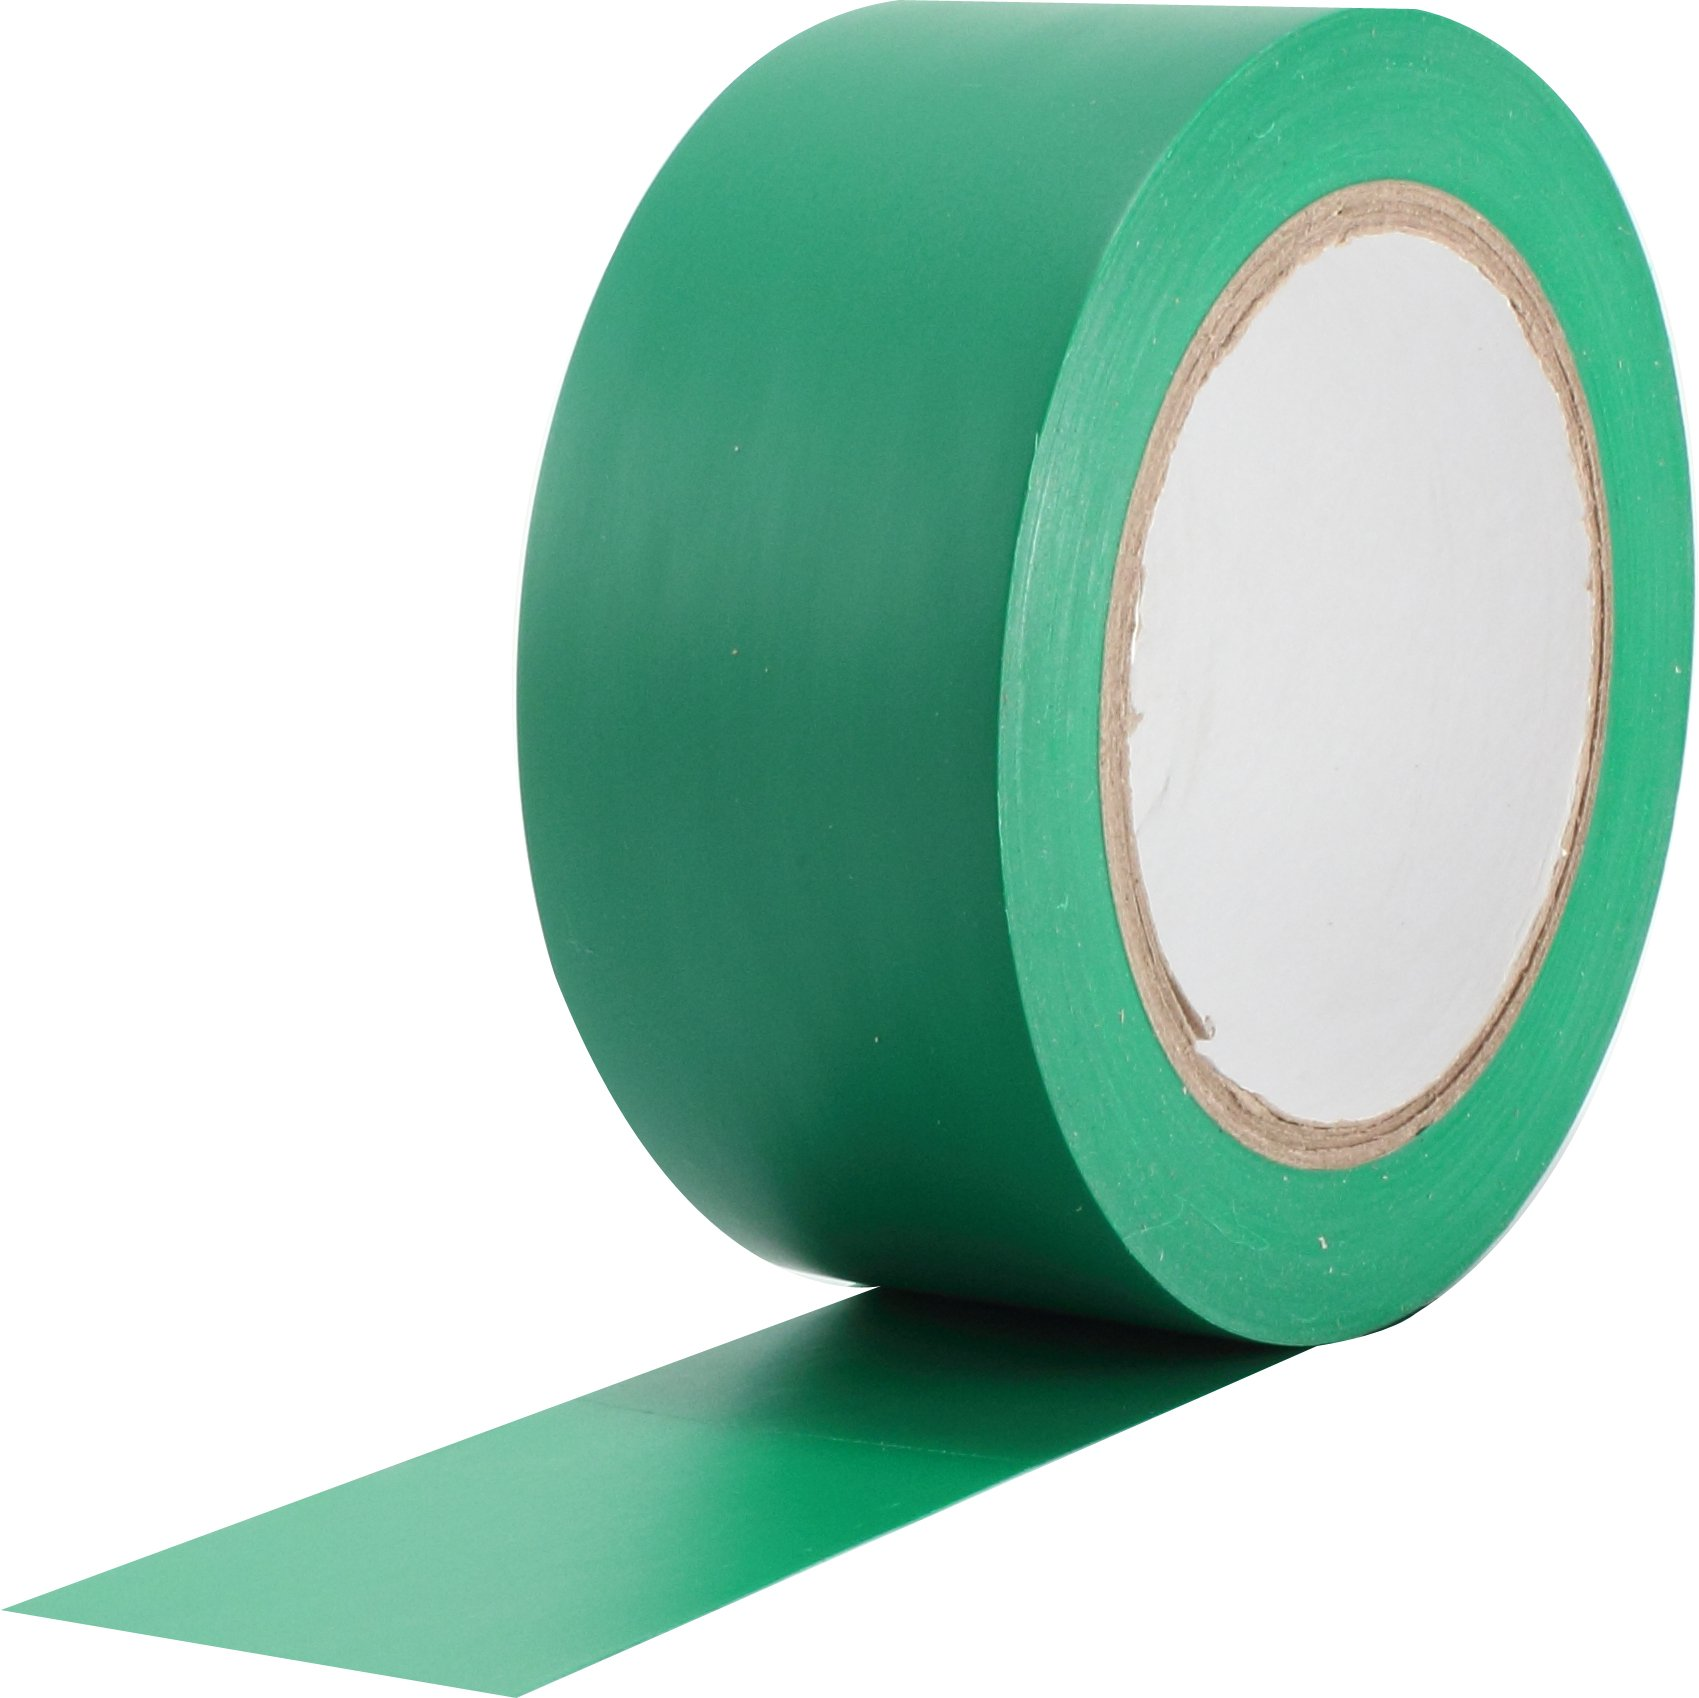 ProTapes Pro 50 Premium Vinyl Safety Marking and Dance Floor Splicing Tape, 6 mils Thick, 36 yds Length x 3'' Width, Green (Pack of 1)